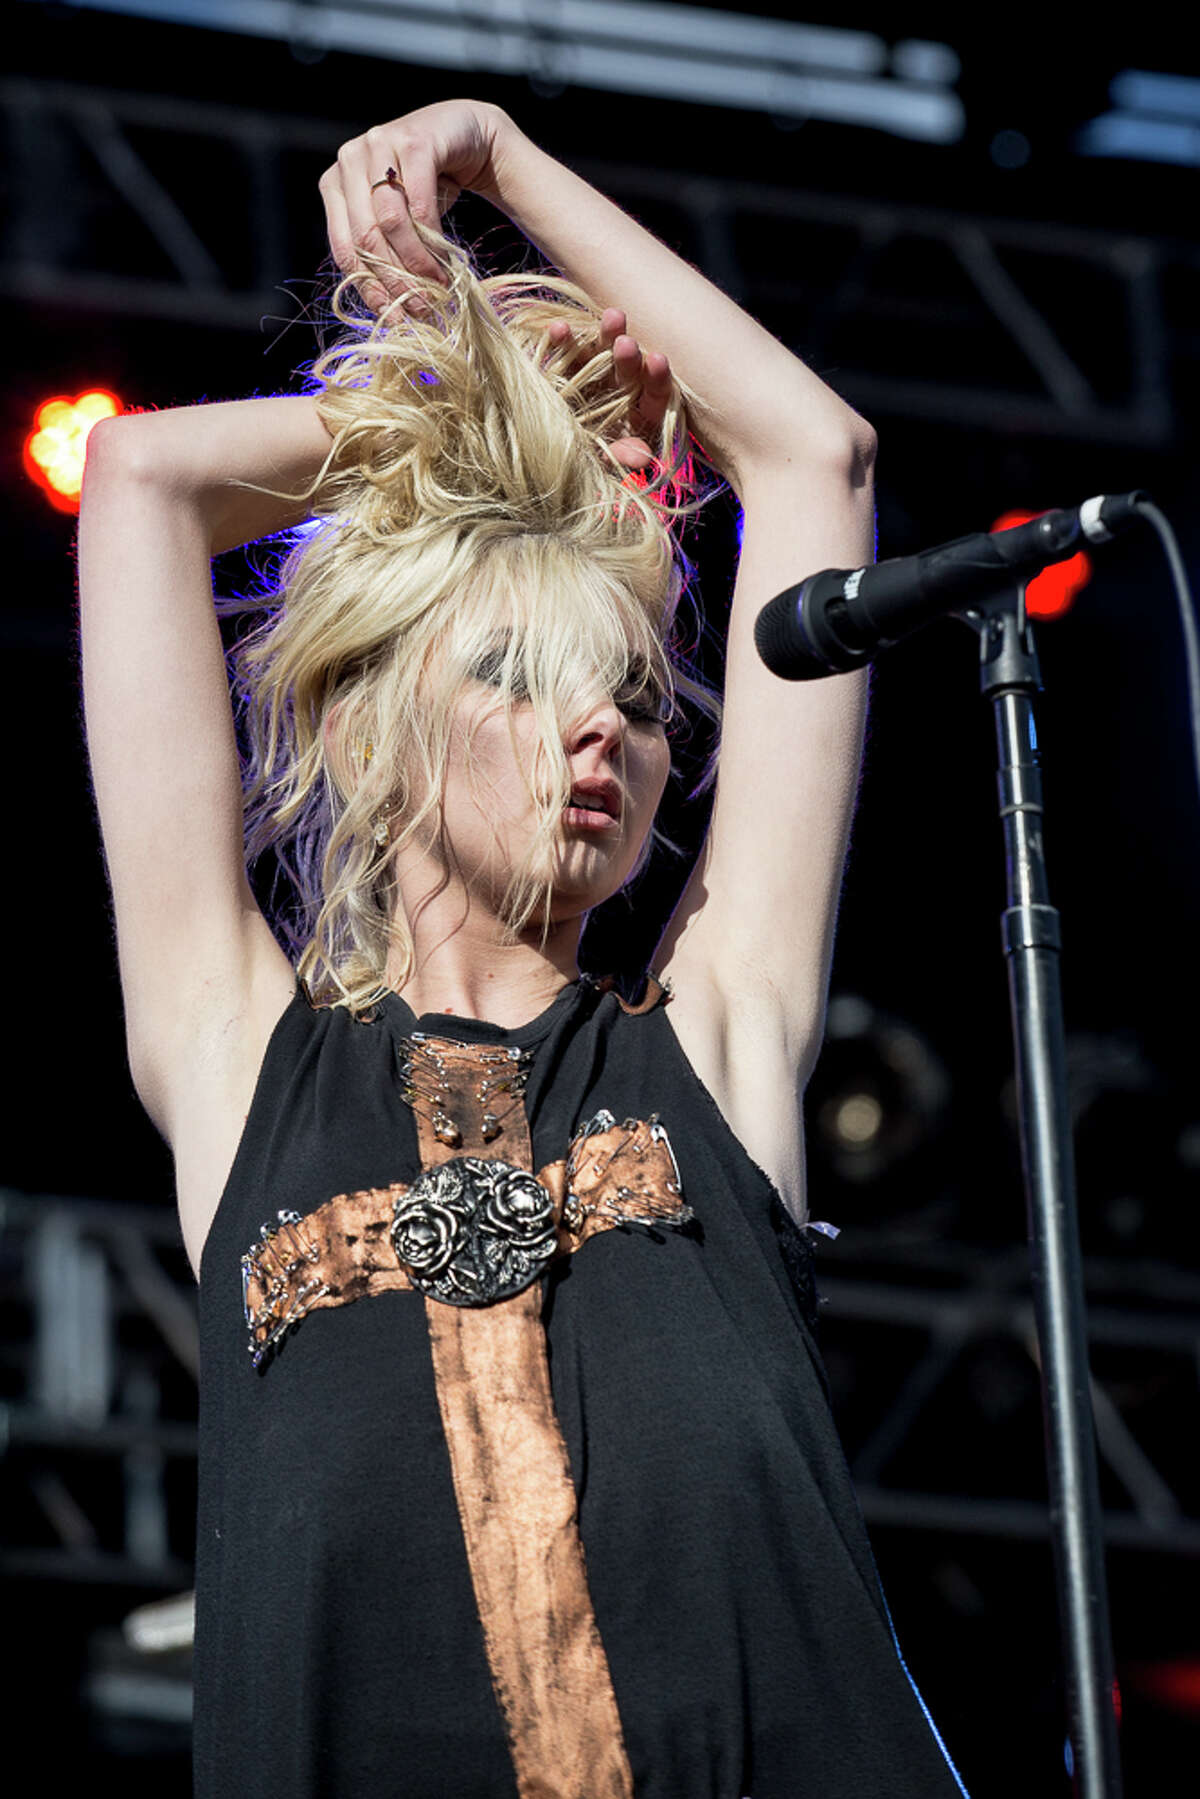 The Pretty Reckless will join Halestorm at the Palace Theatre in Albany on May 5. The show was originally scheduled at the Washington Avenue Armory.